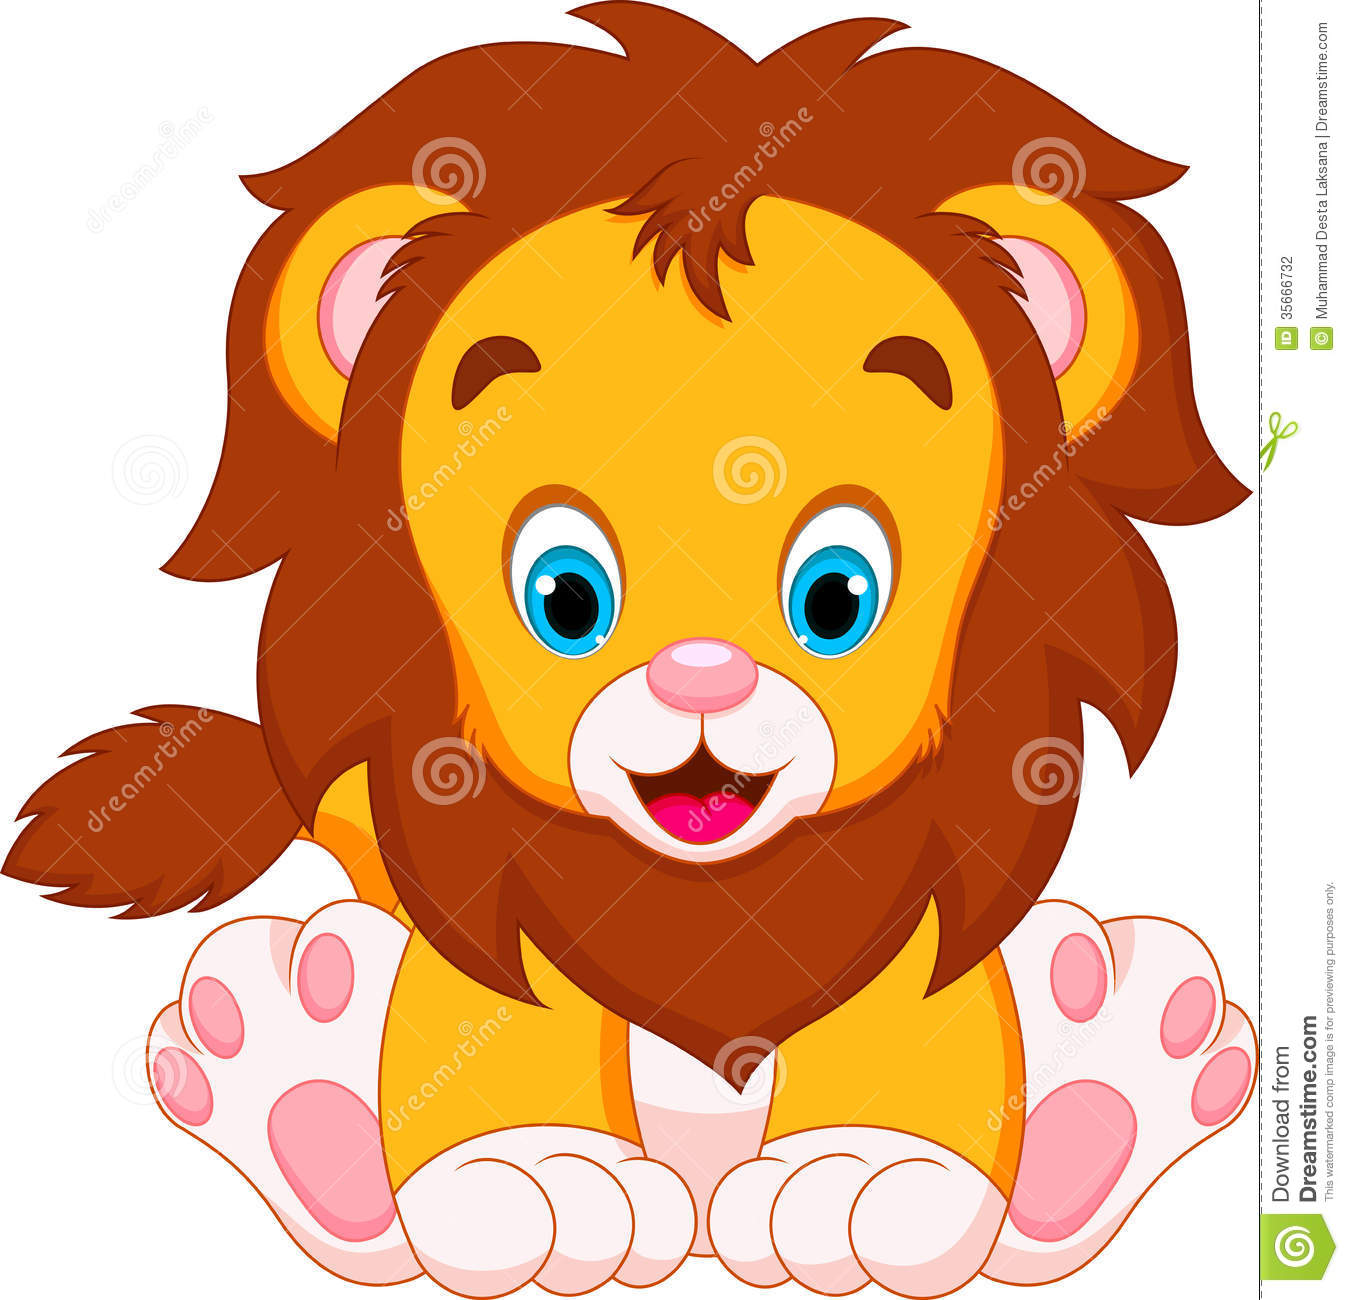 cute%20lion%20head%20clipart